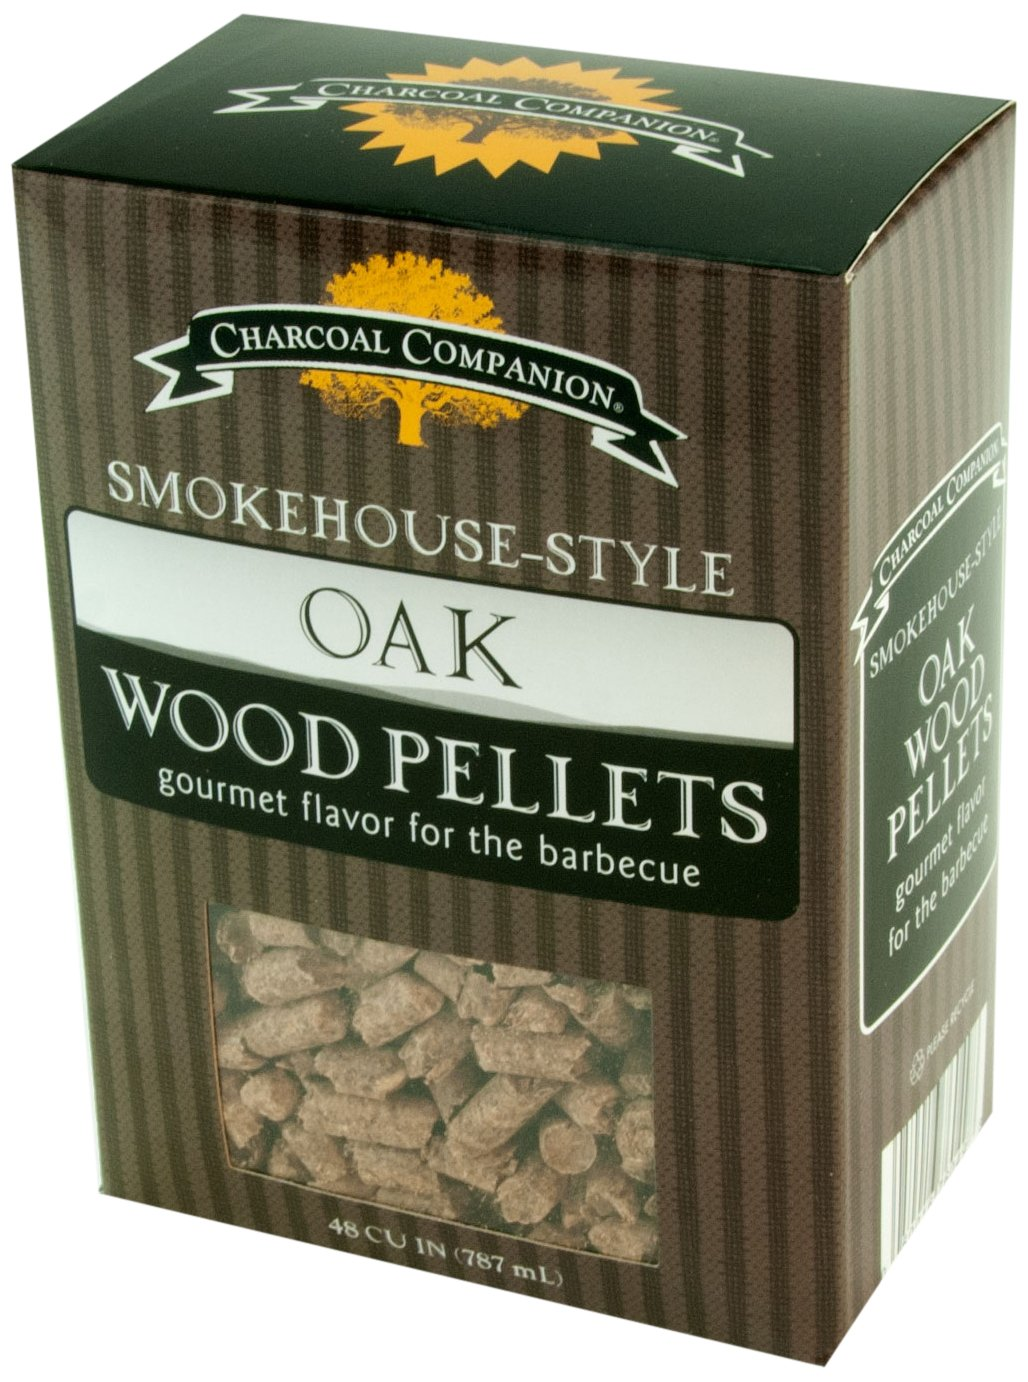 Charcoal Companion Pellets de Fumage Style Smokehouse Marron 10 x 6 x 14 cm Pellets de Fumage Style Smokehouse The Companion Group CC6049